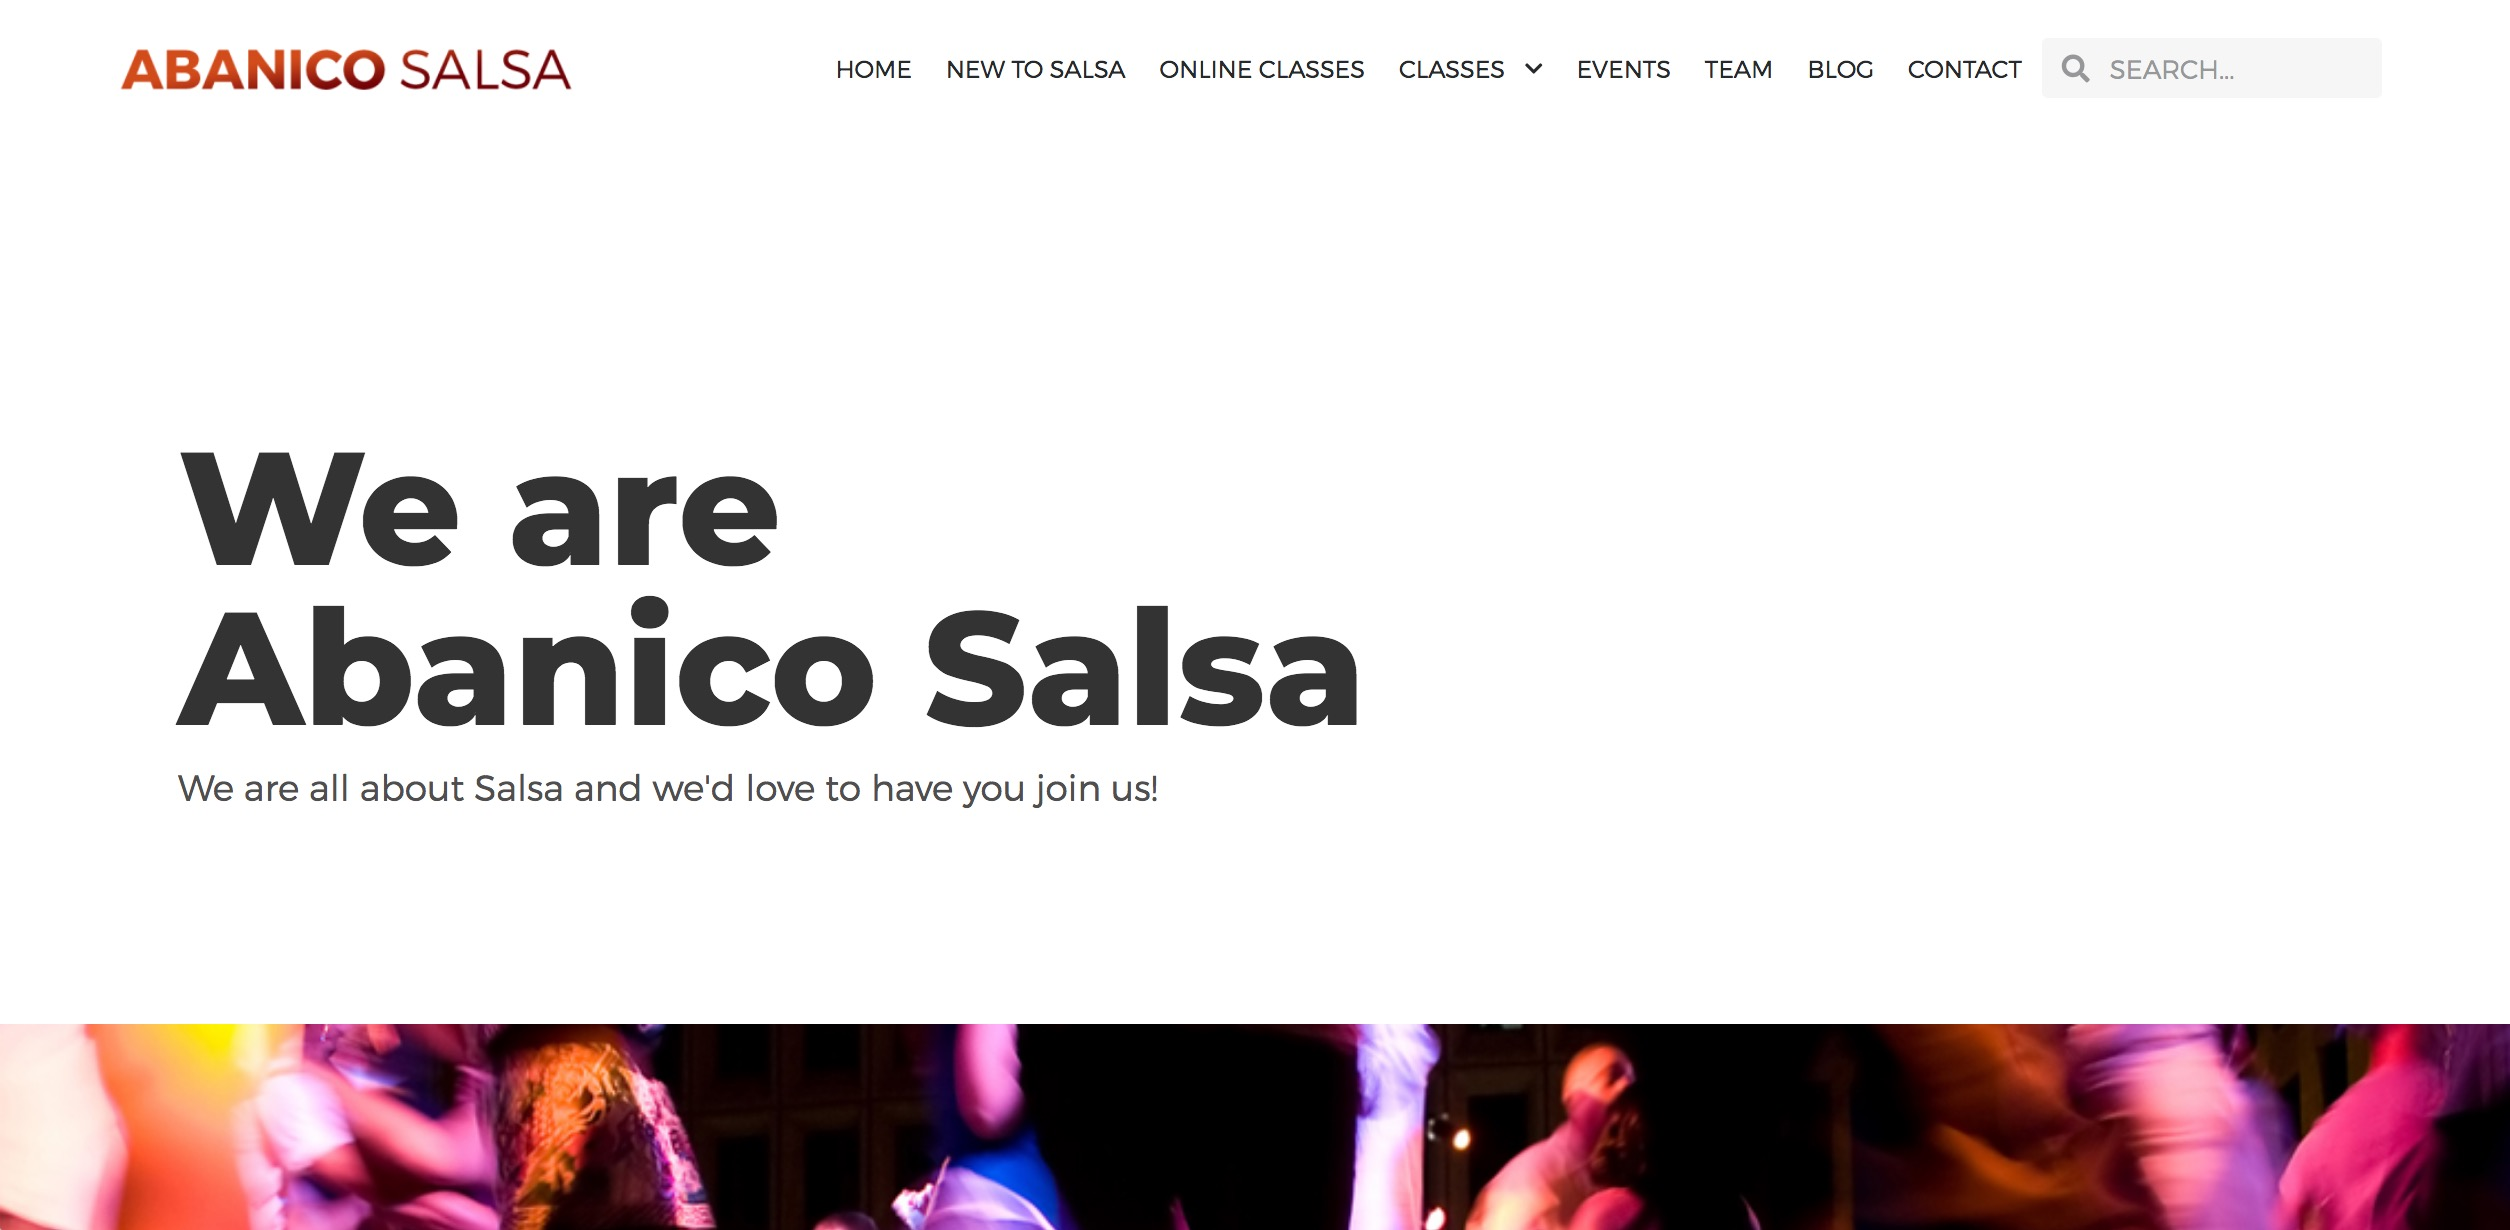 Abanico Salsa website screenshot